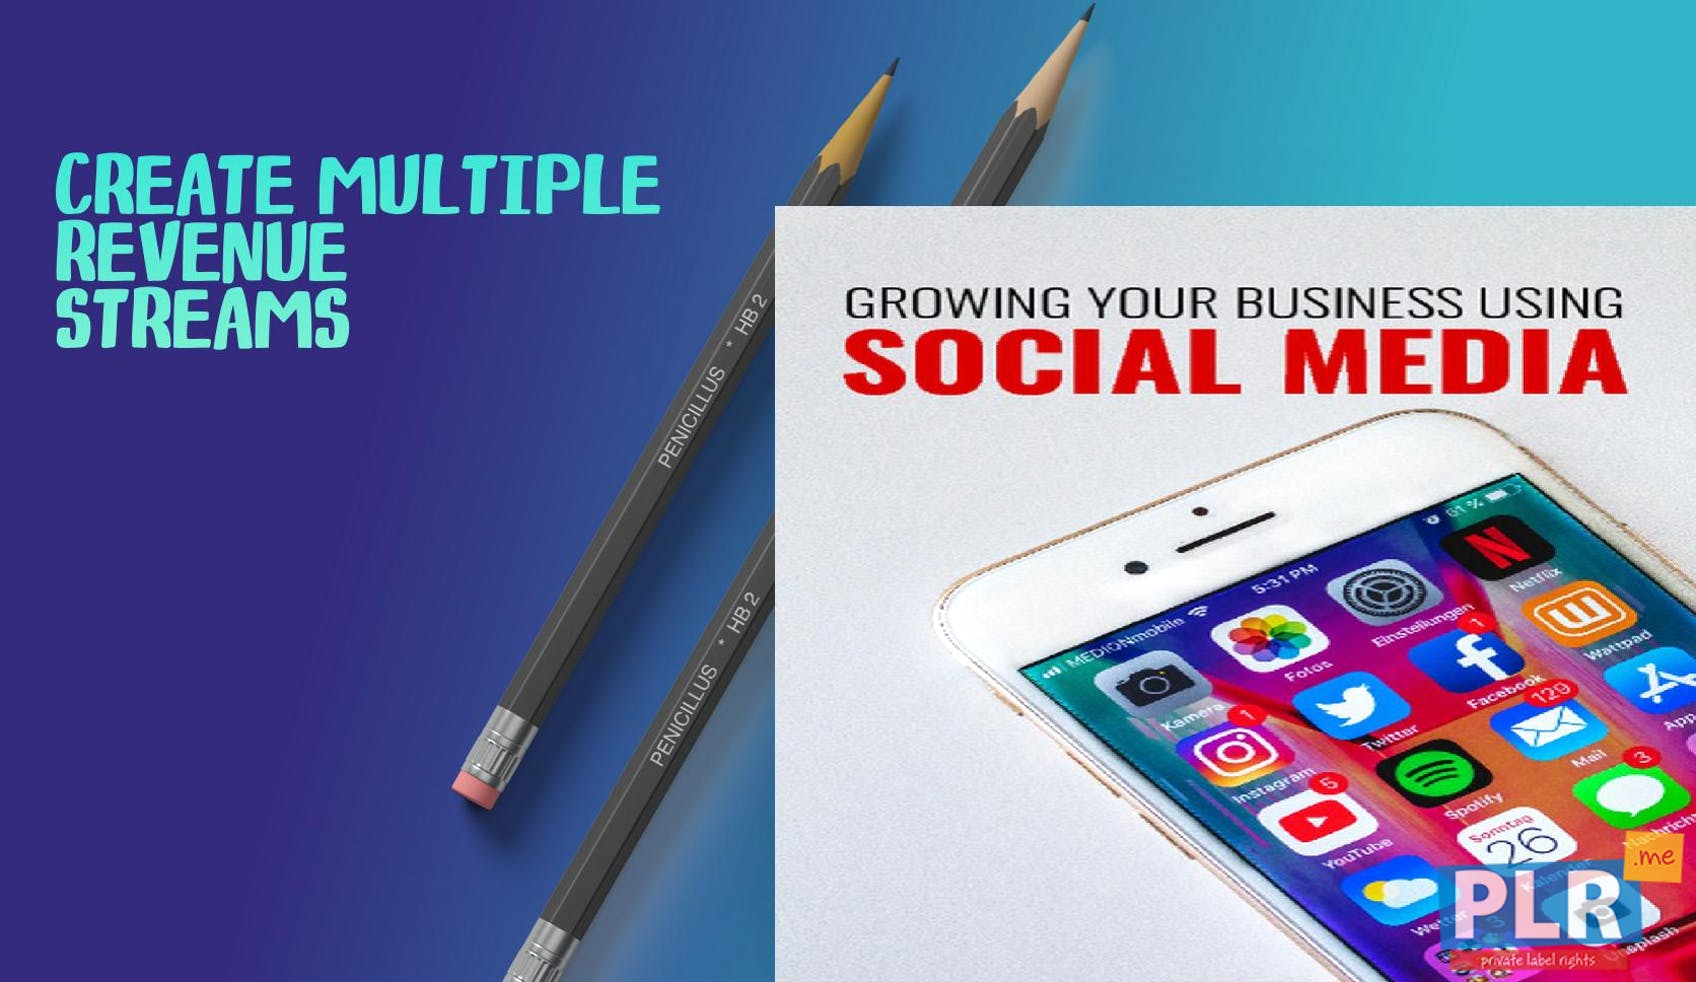 Growing Your Business Using Social Media